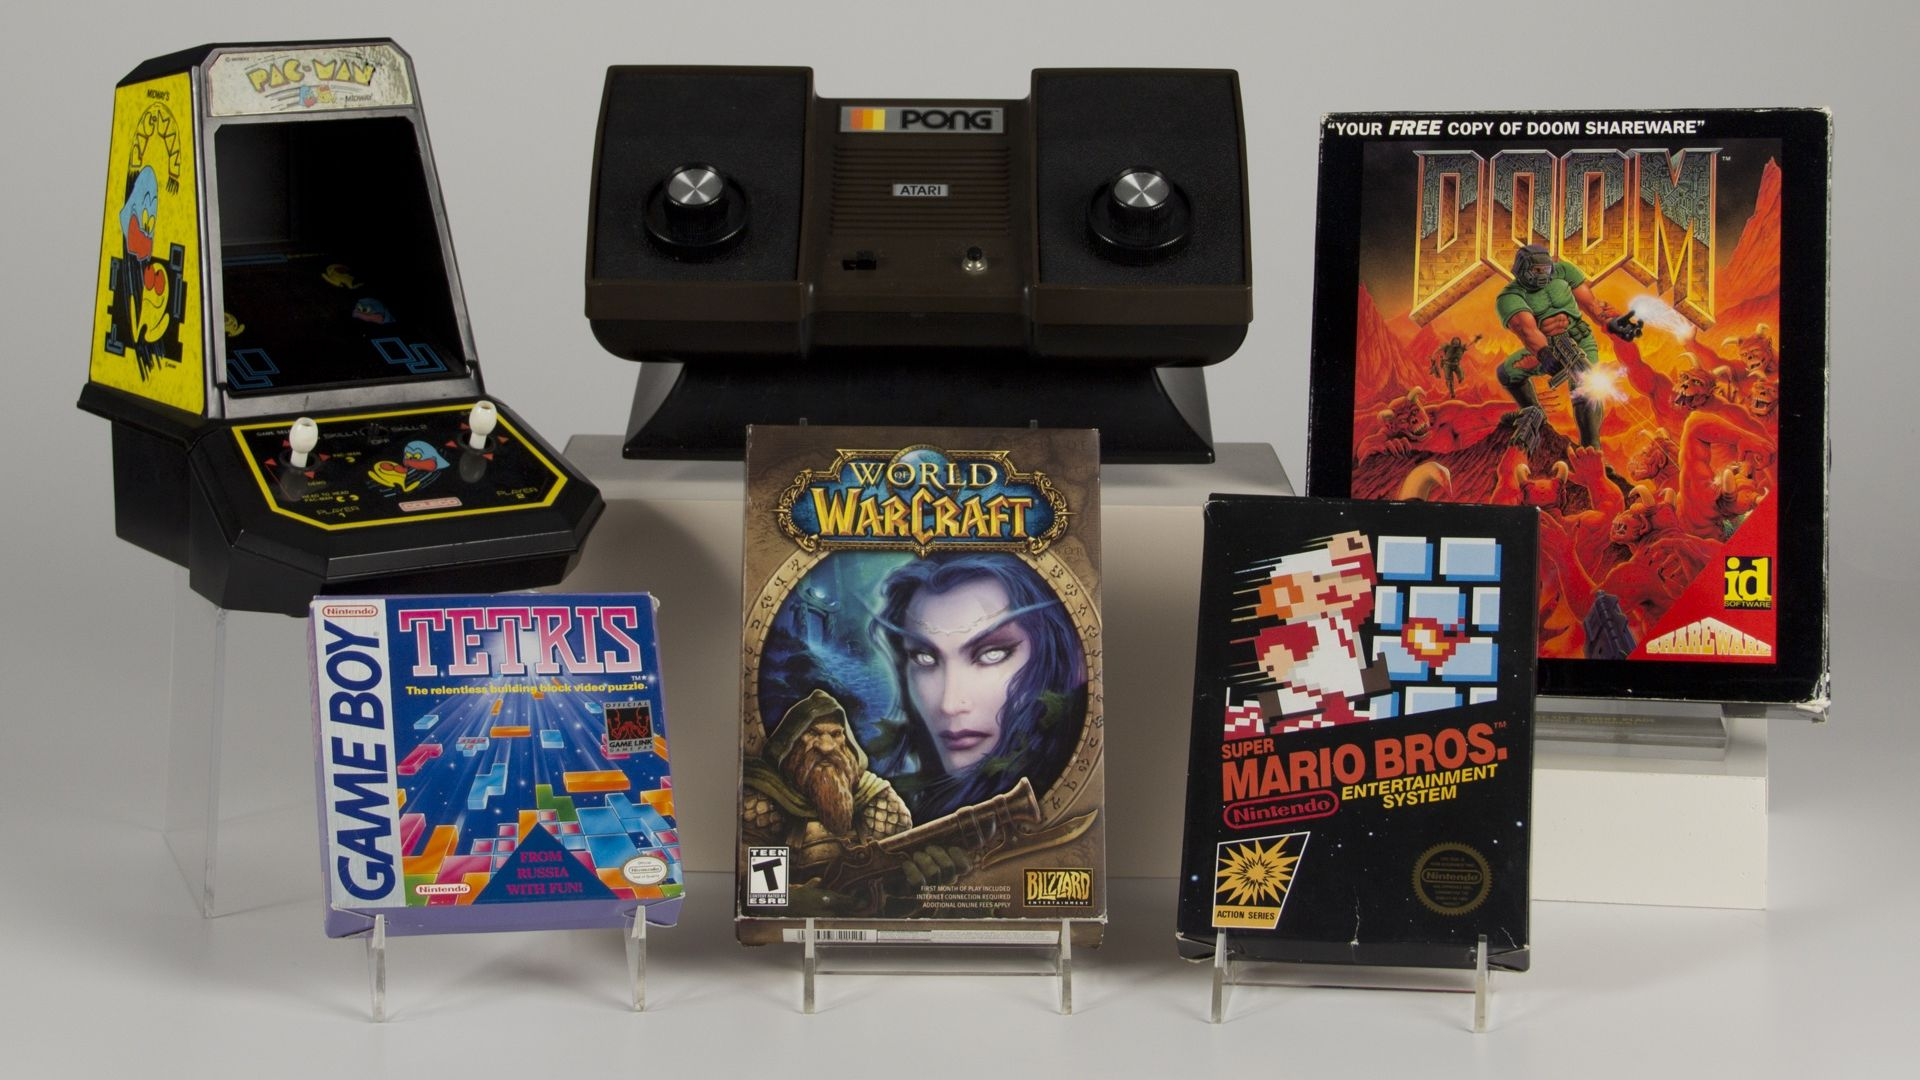 The six inductees of the 2015 World Video Game Hall of Fame